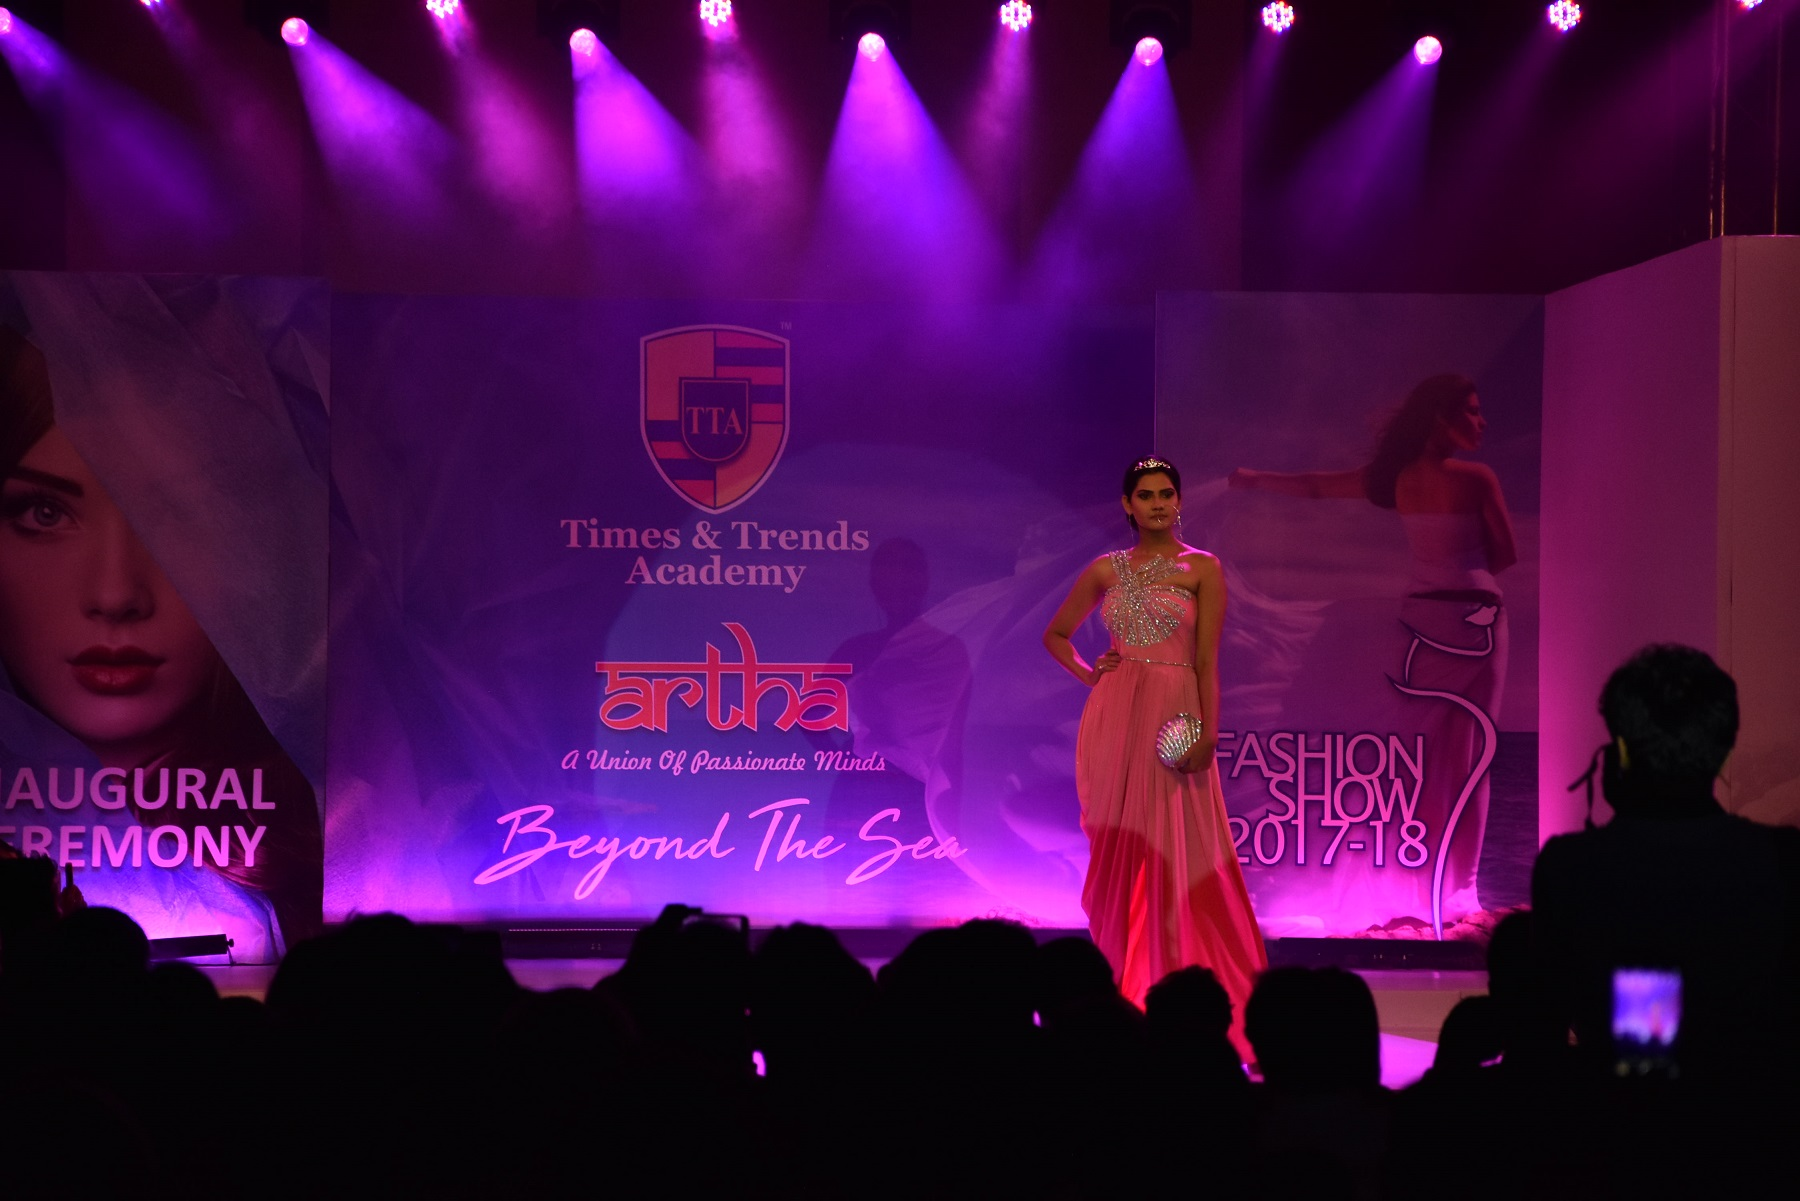 Times & Trends Academy Launches 5 Centers in Pune Along with the Dazzling Fashion Show – Artha